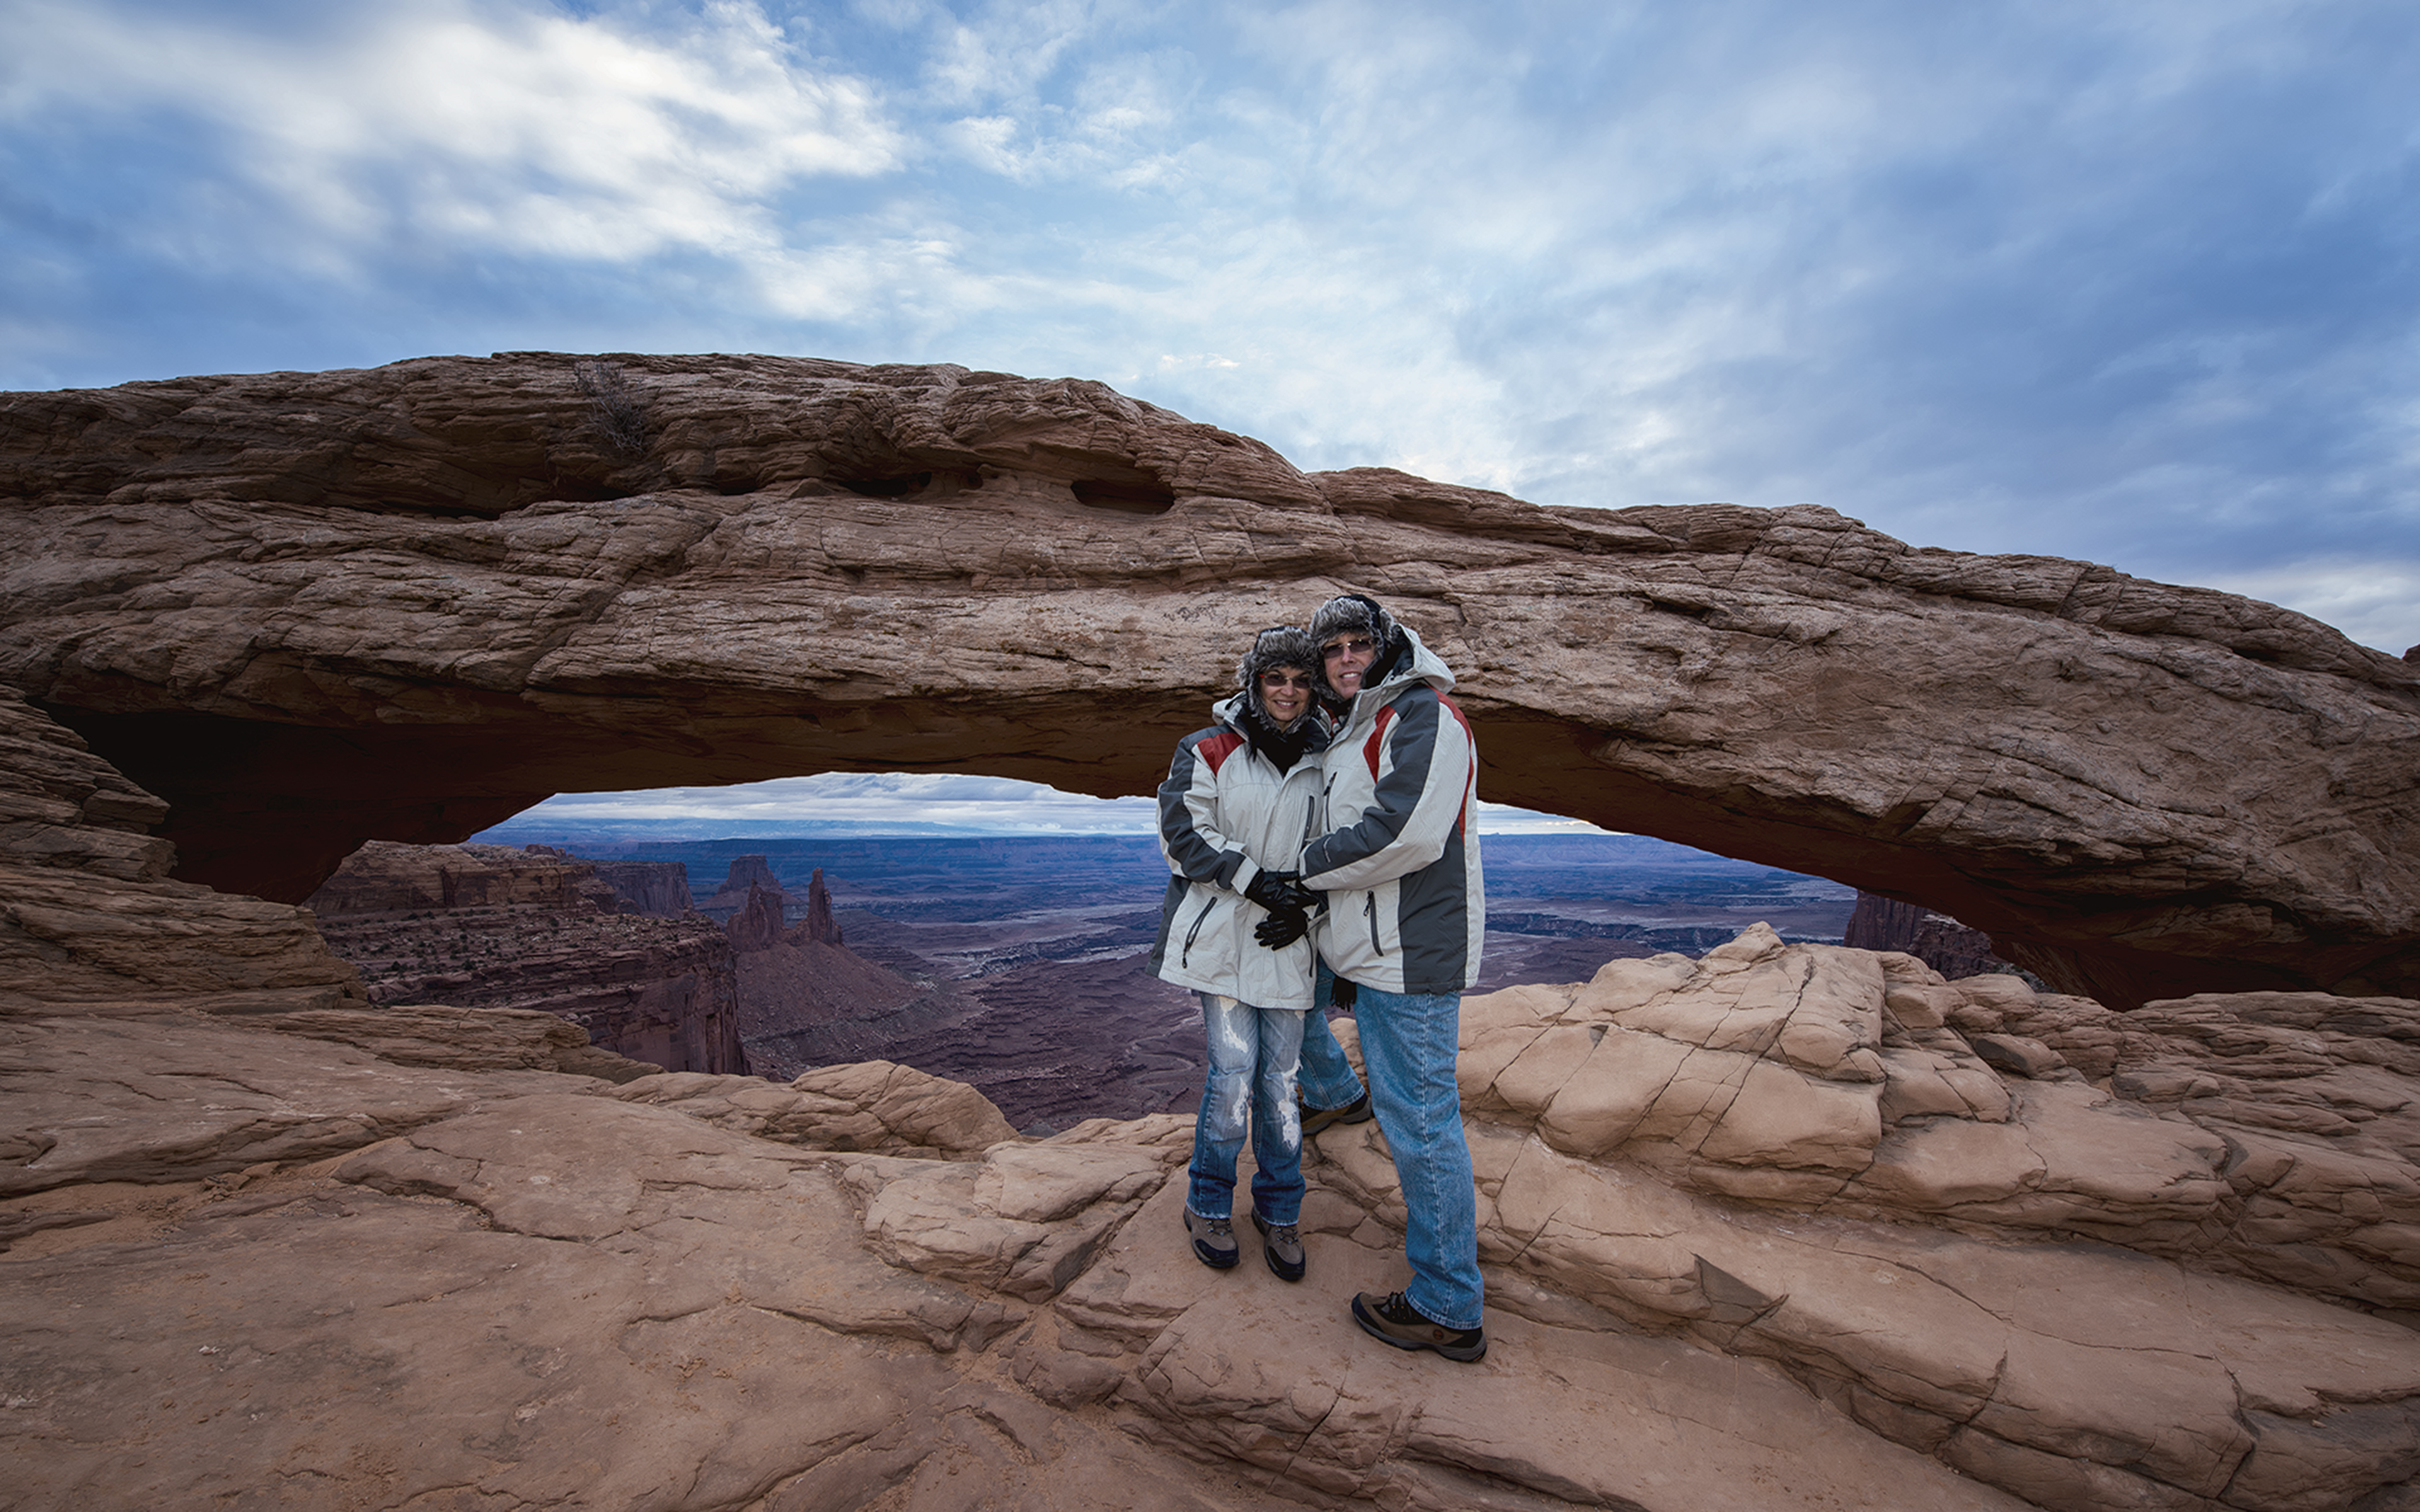 Mesa Arch in Canyonlands NP